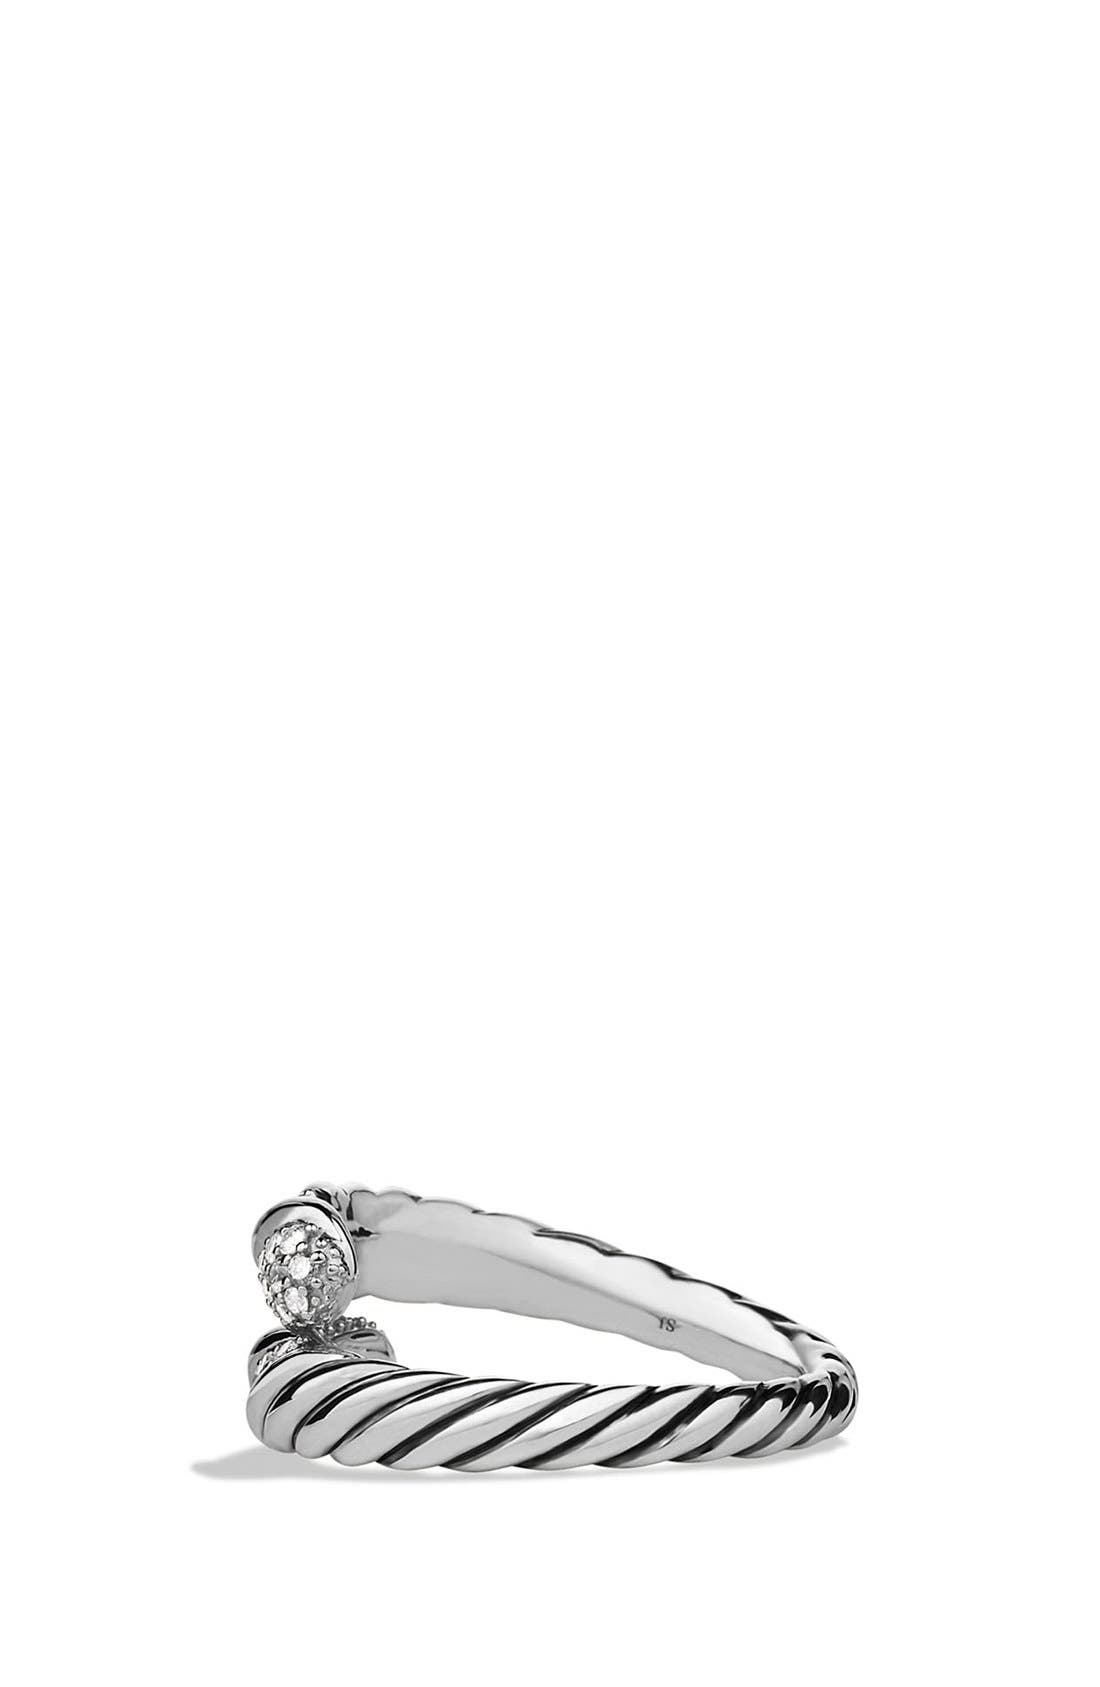 'Willow' Open Single Row Ring with Diamonds,                             Alternate thumbnail 4, color,                             040